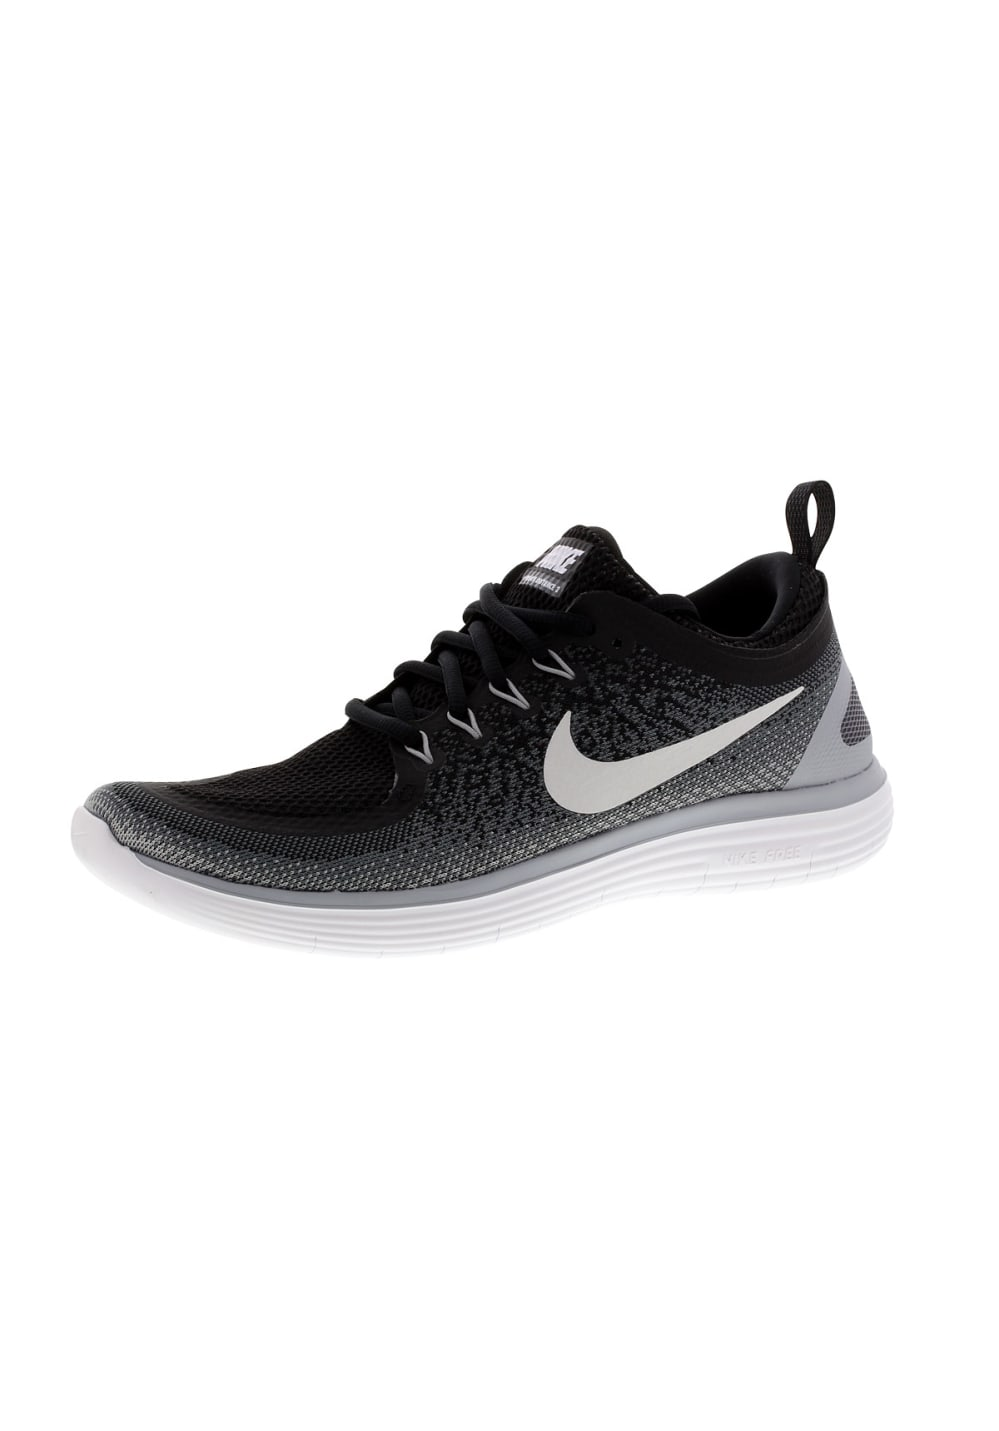 online store becf9 9530b Nike Free RN Distance 2 - Running shoes for Men - Black